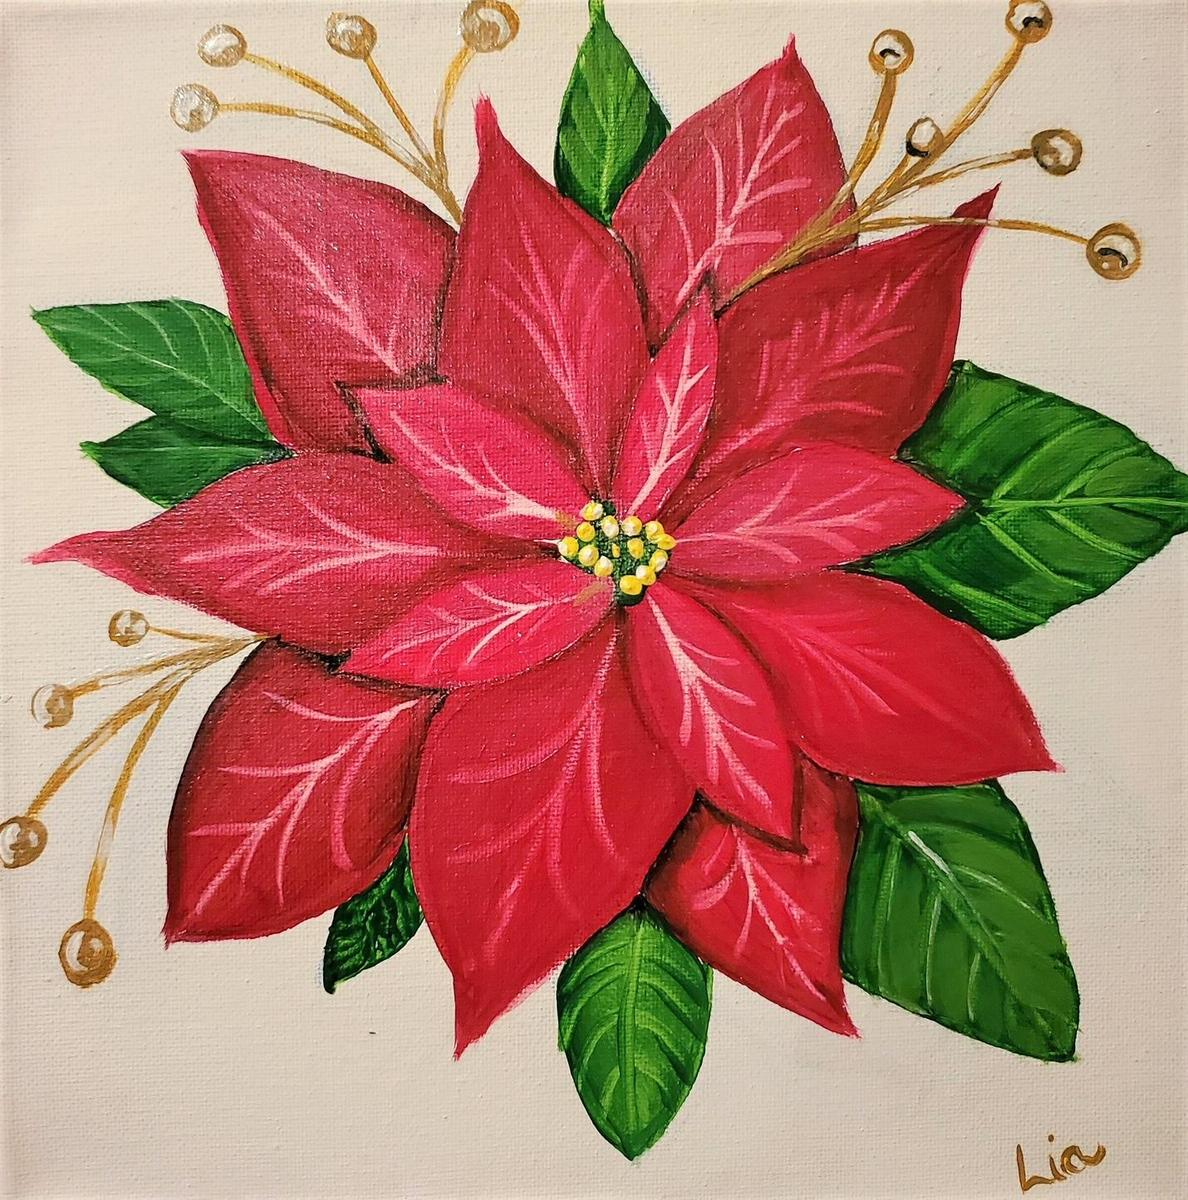 Painting of Poinsetta